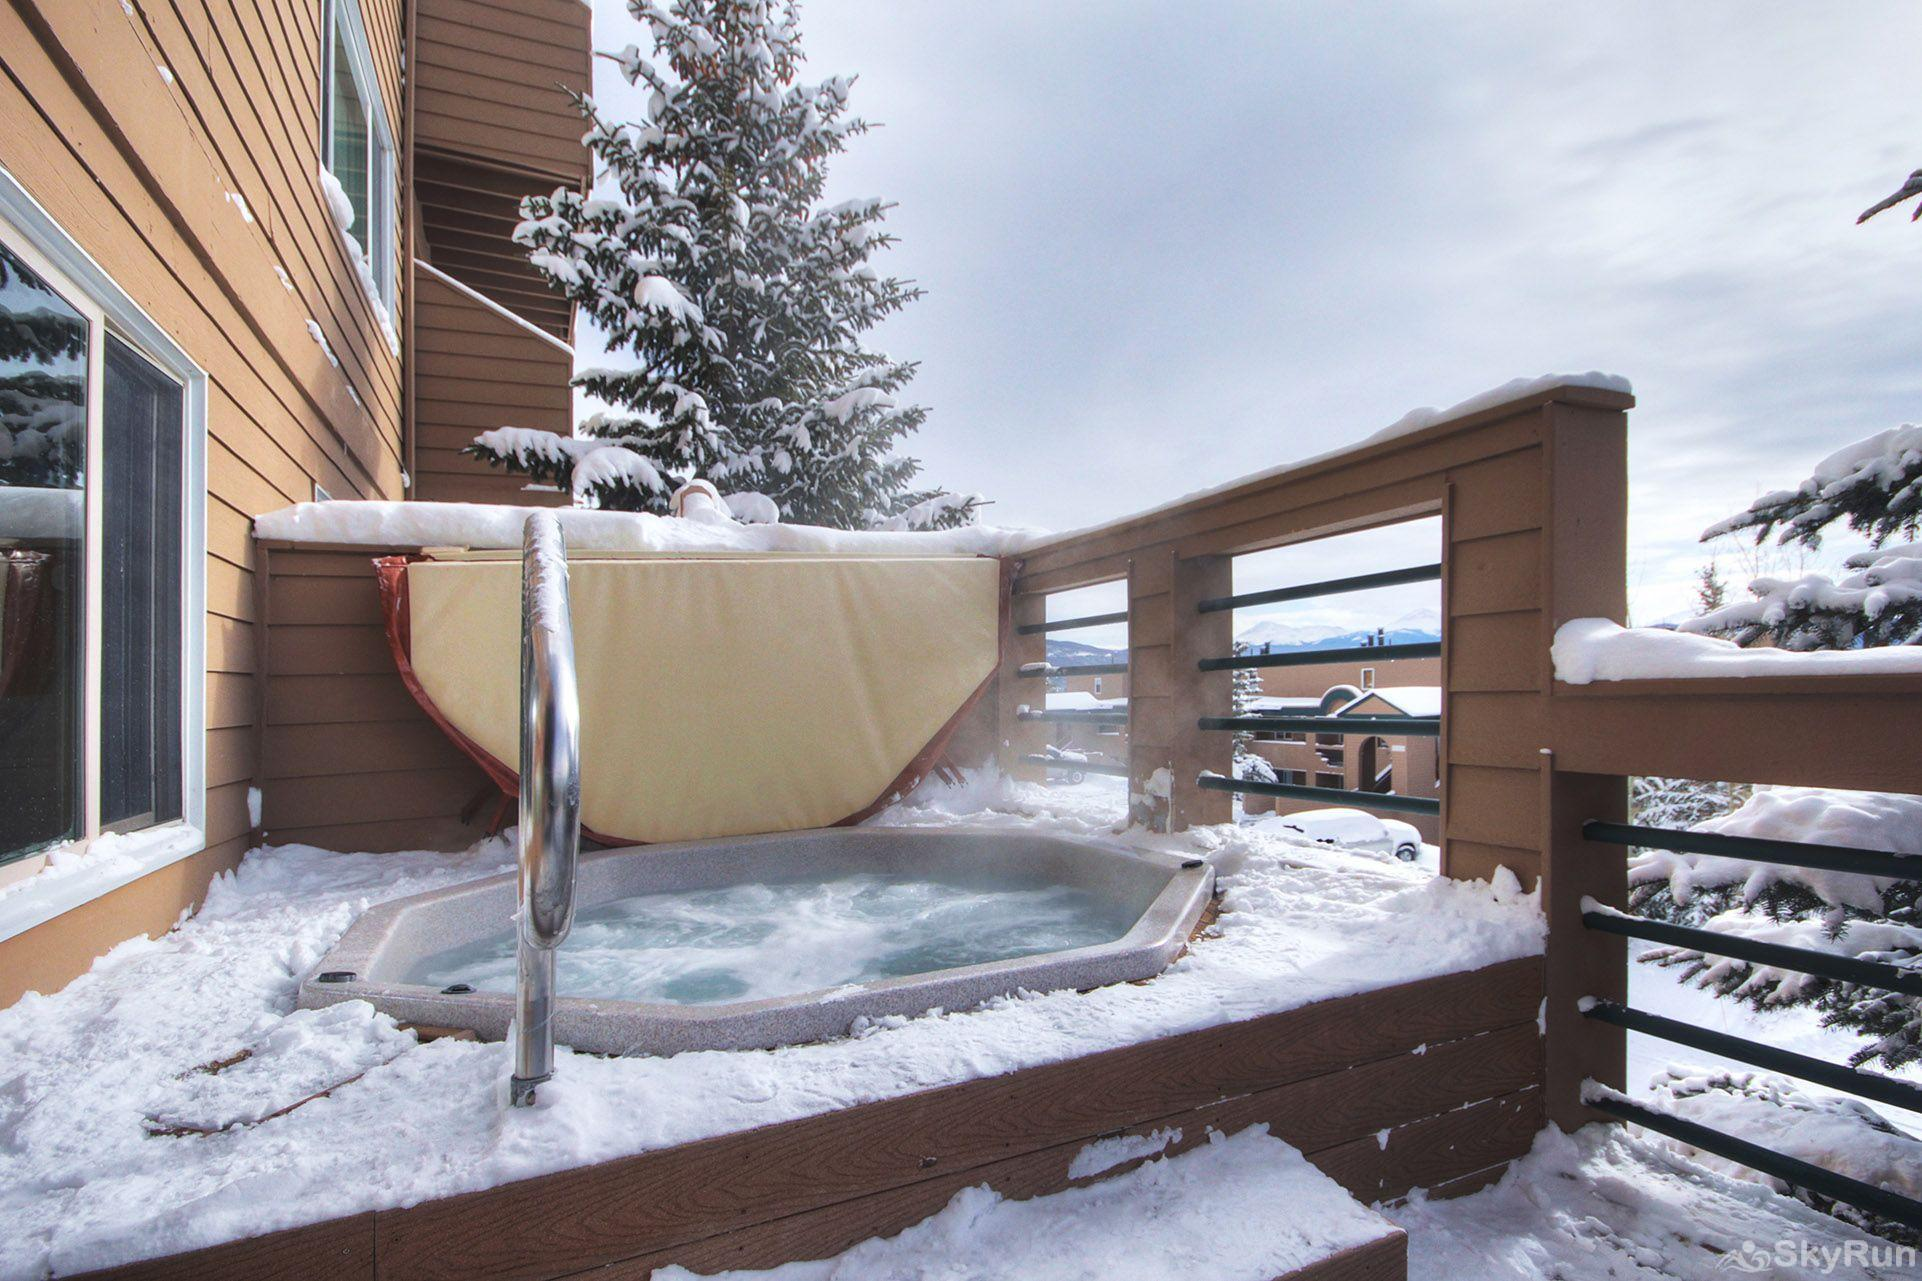 522 Watch Hill Outdoor hot tubs with great views